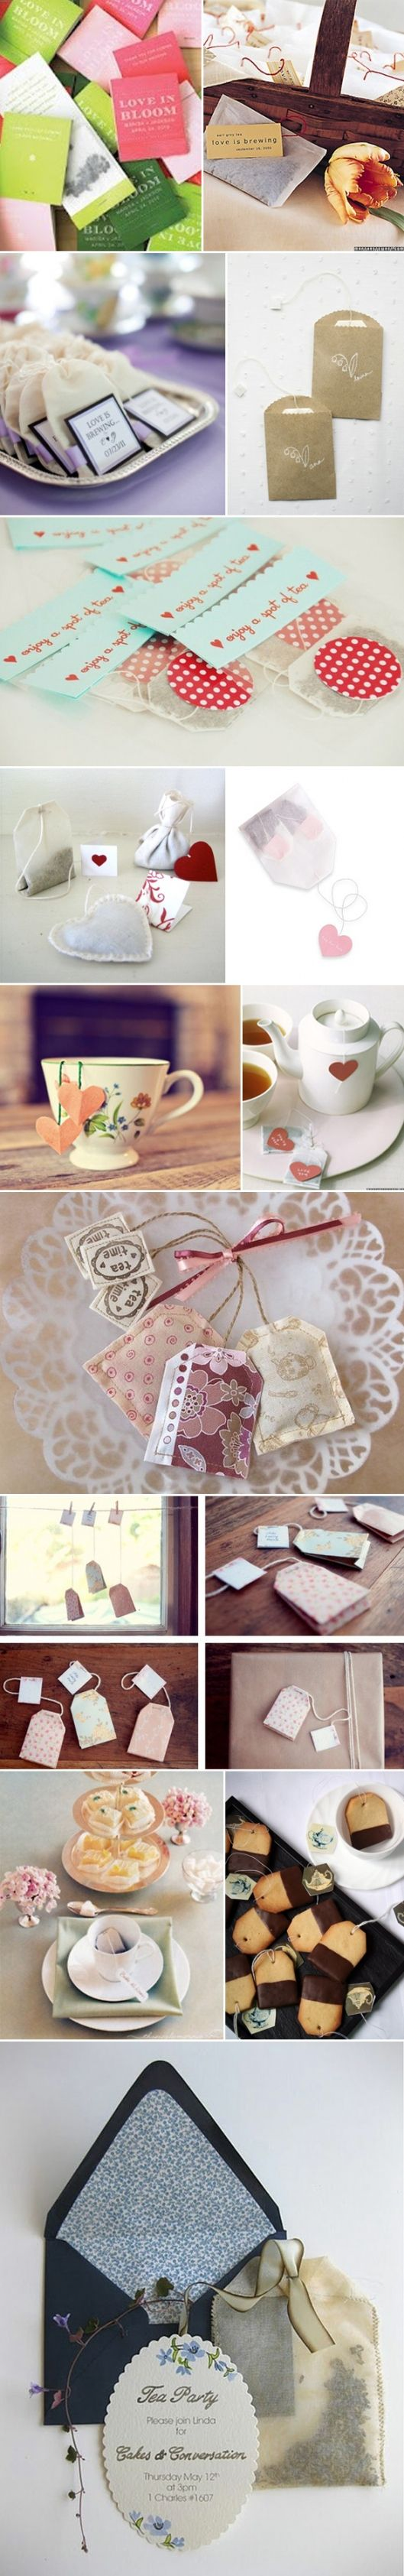 tea party ideas !